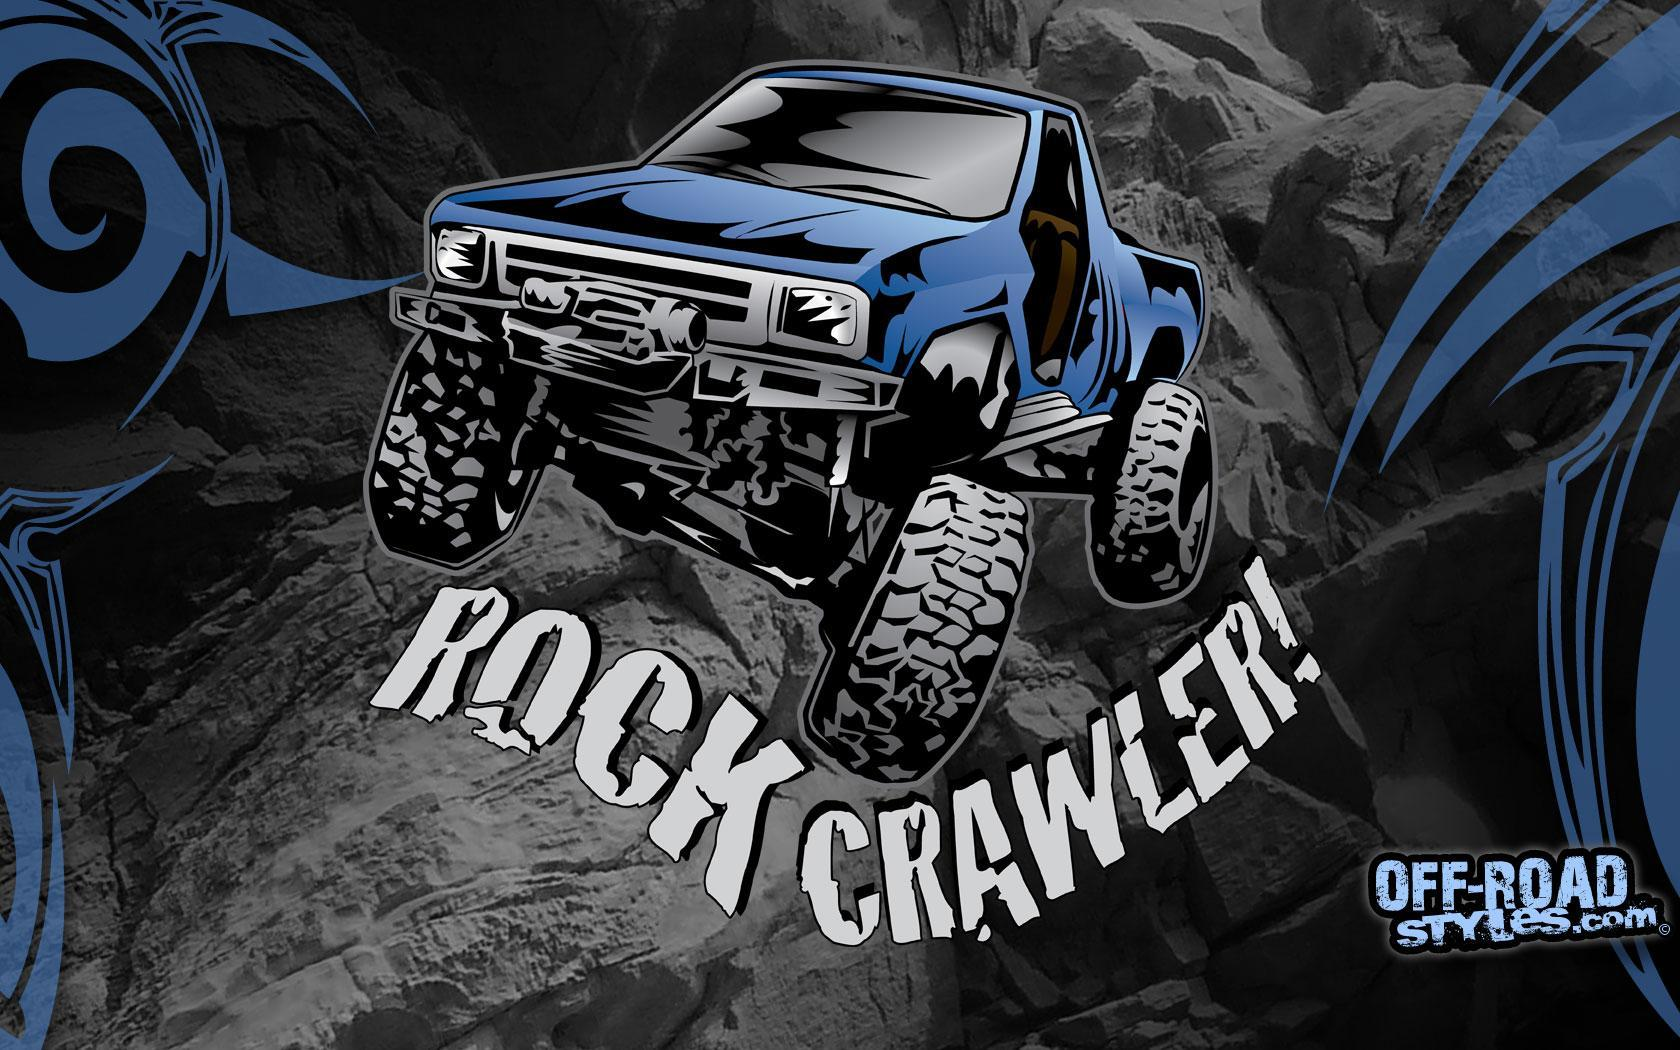 Rock Crawler Wallpaper : Free off road wallpapers styles